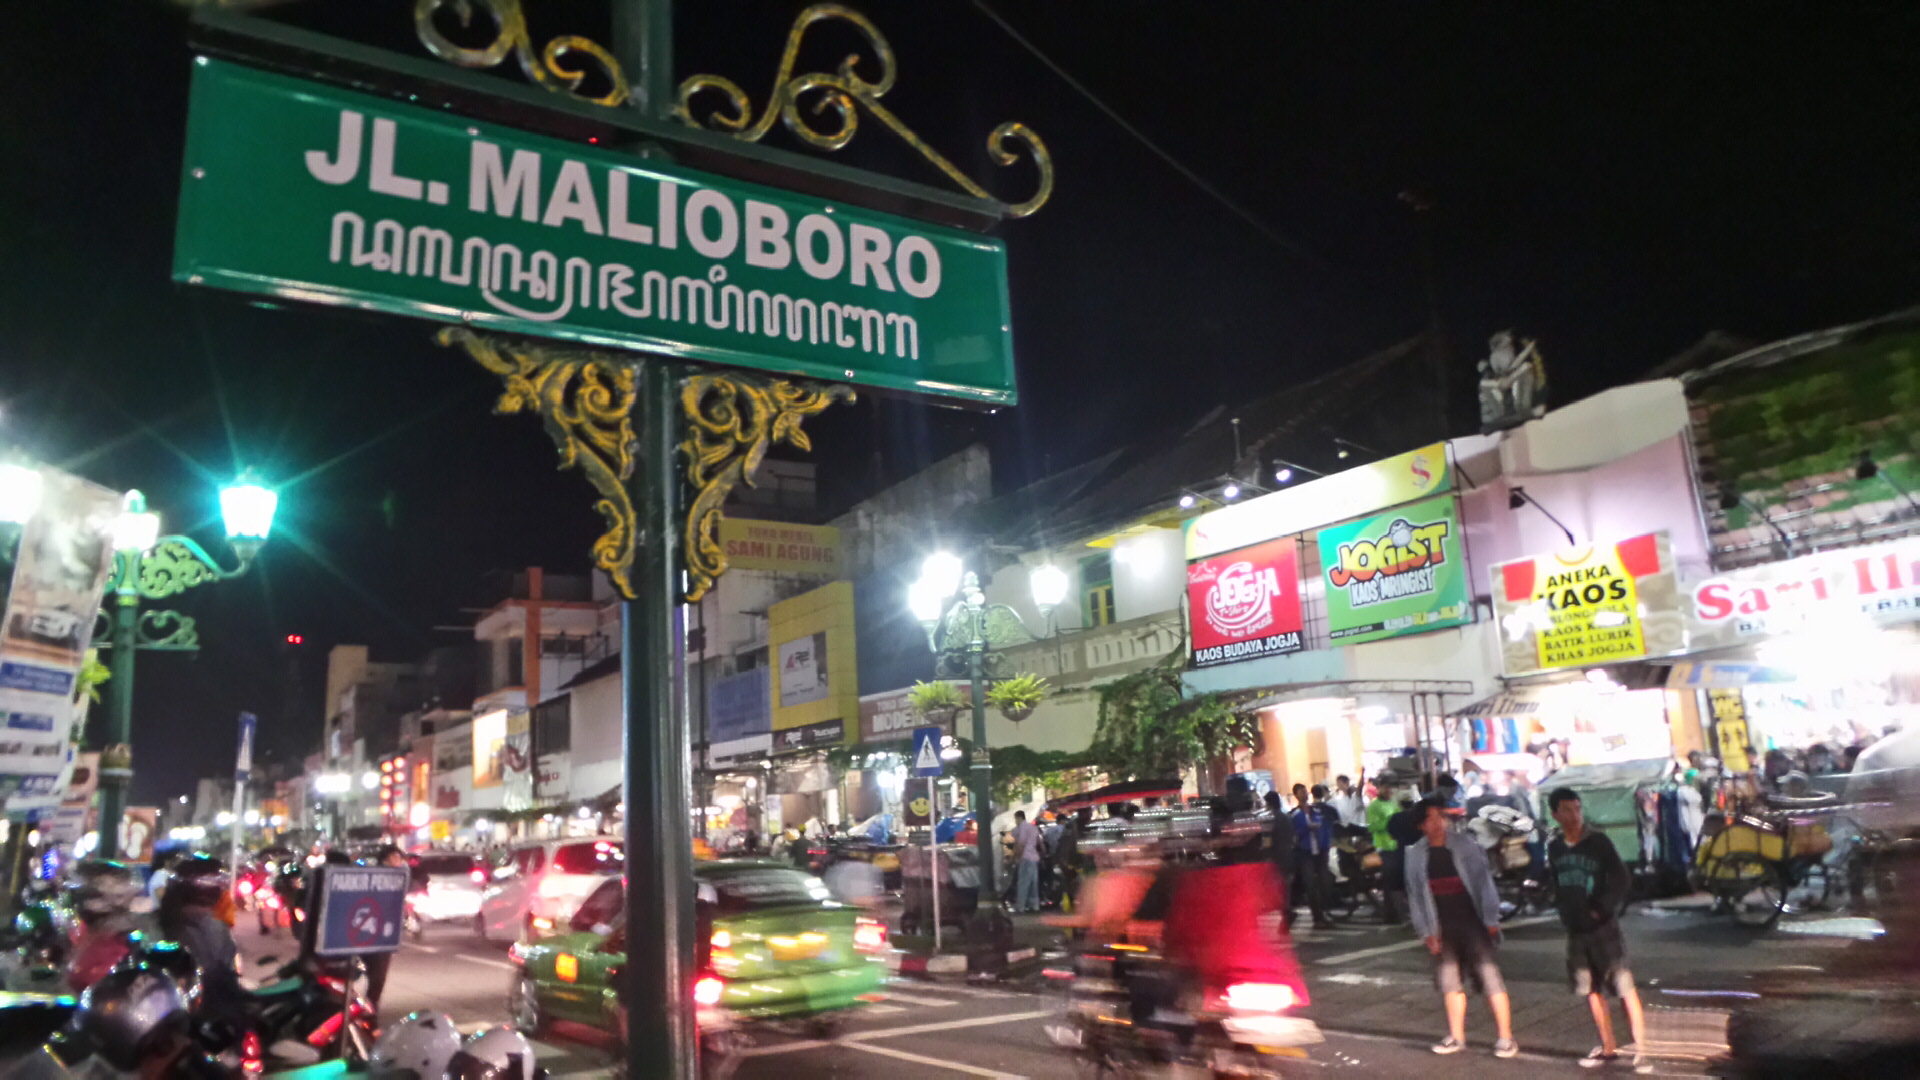 Malioboro street is a major shopping street in Yogyakarta